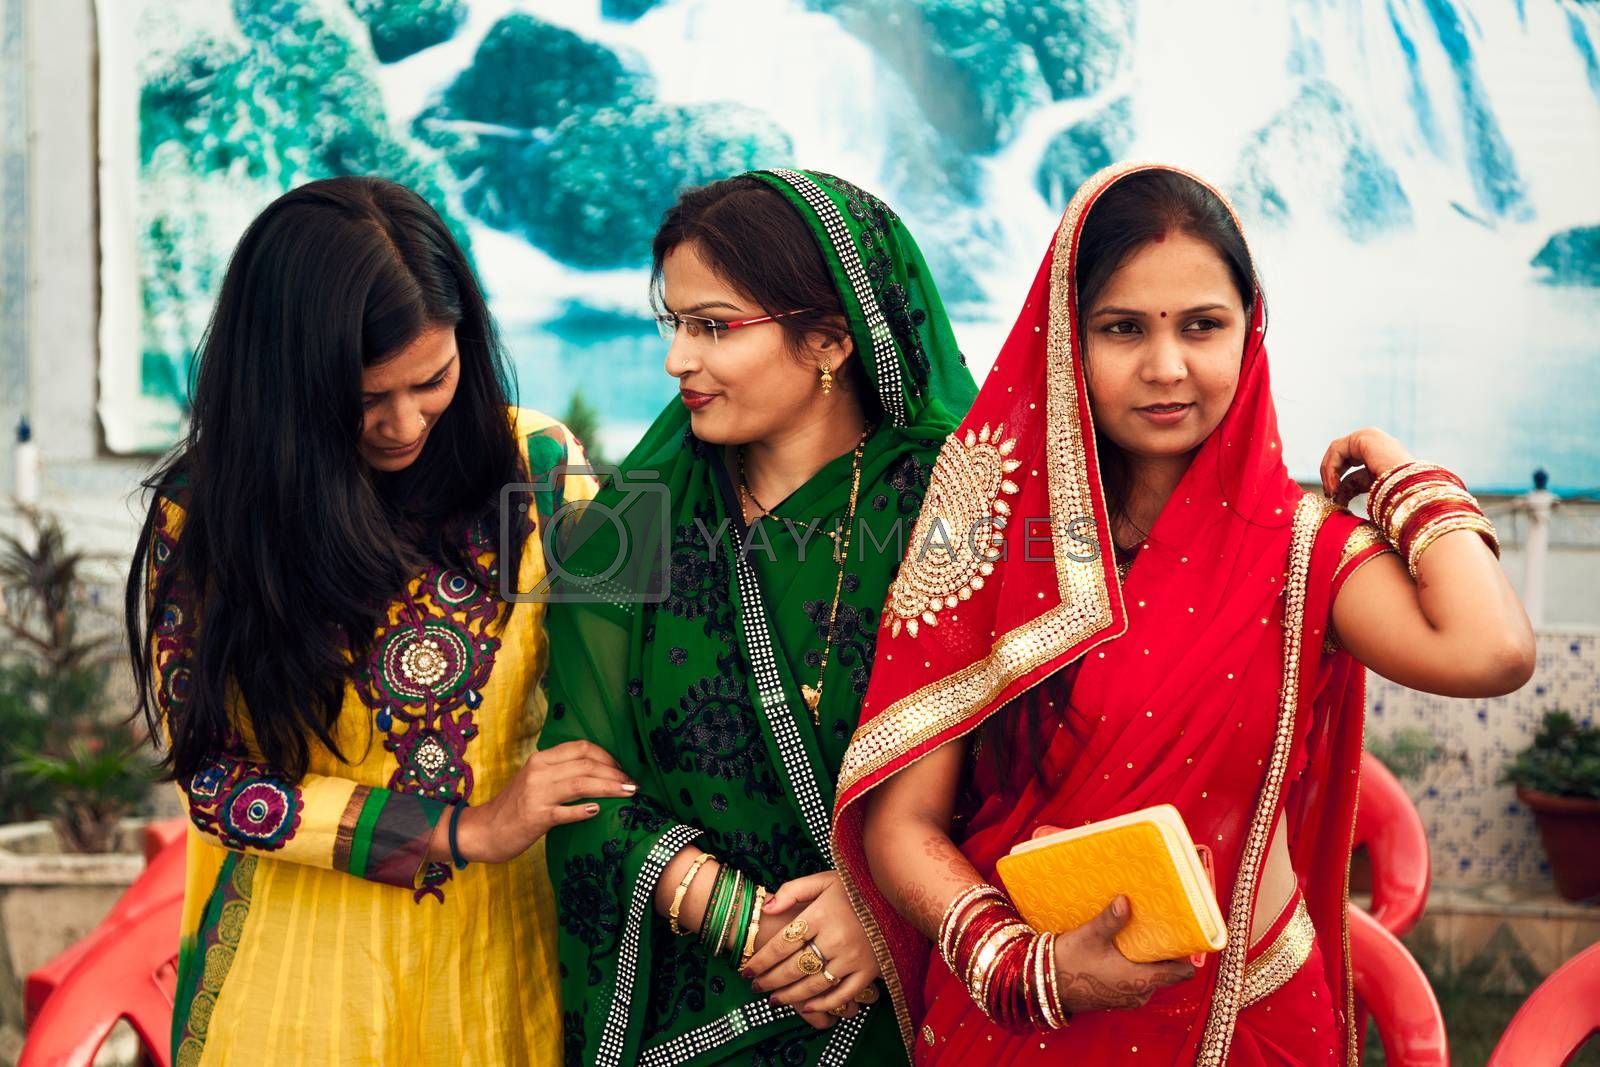 Happy Indian womens in Indian traditional dresses called colourful sarees and suit